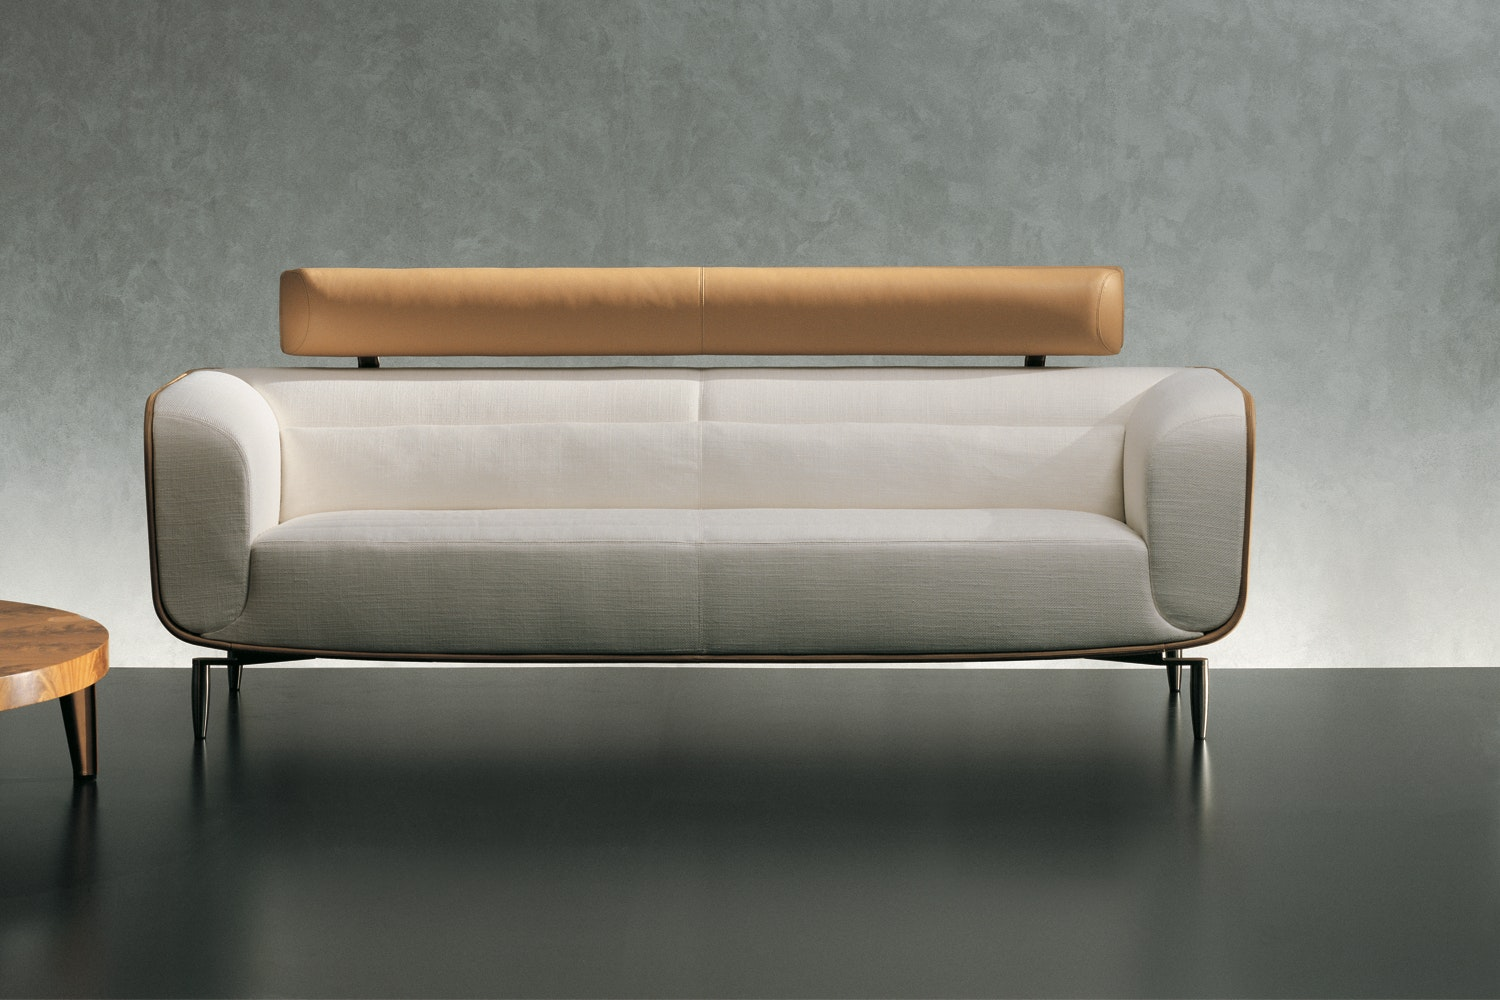 Yfi Sofa by Chi Wing Lo for Giorgetti